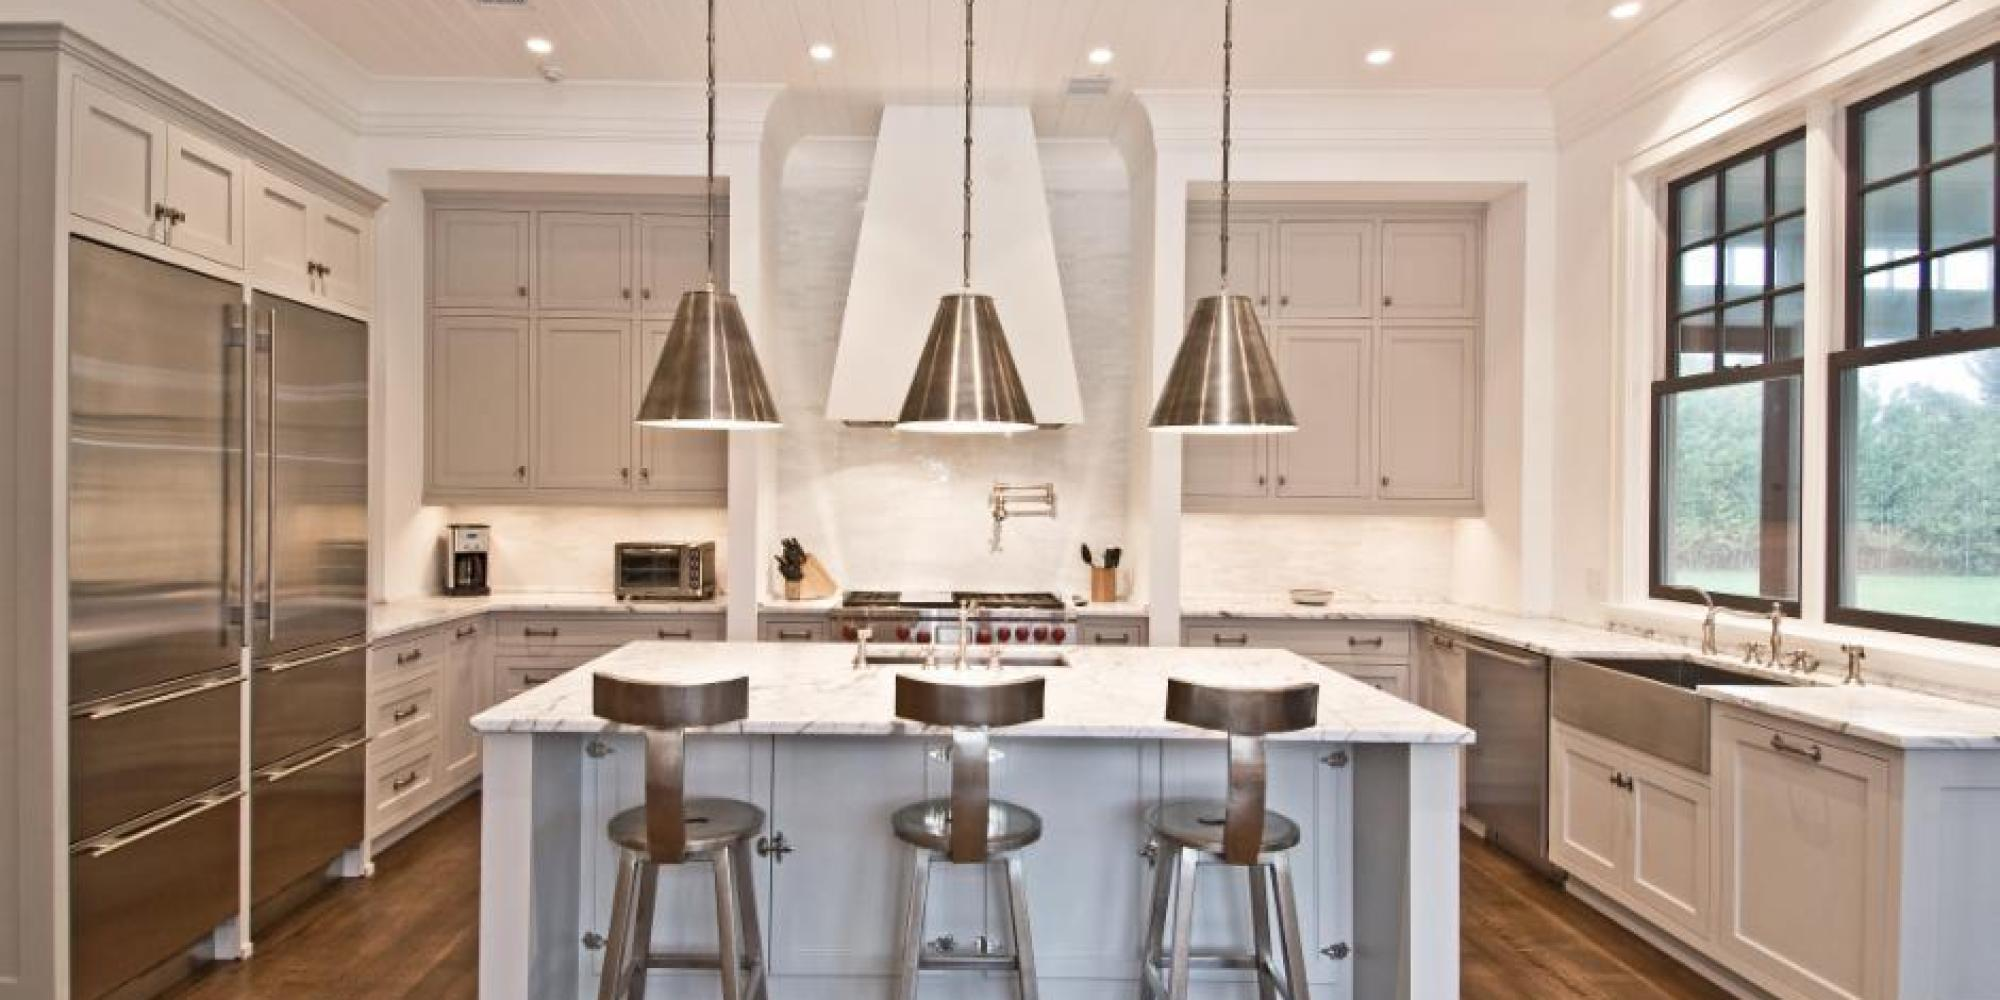 The Best Paint Colors For Every Type Of Kitchen HuffPost - What paint to use on kitchen cabinets